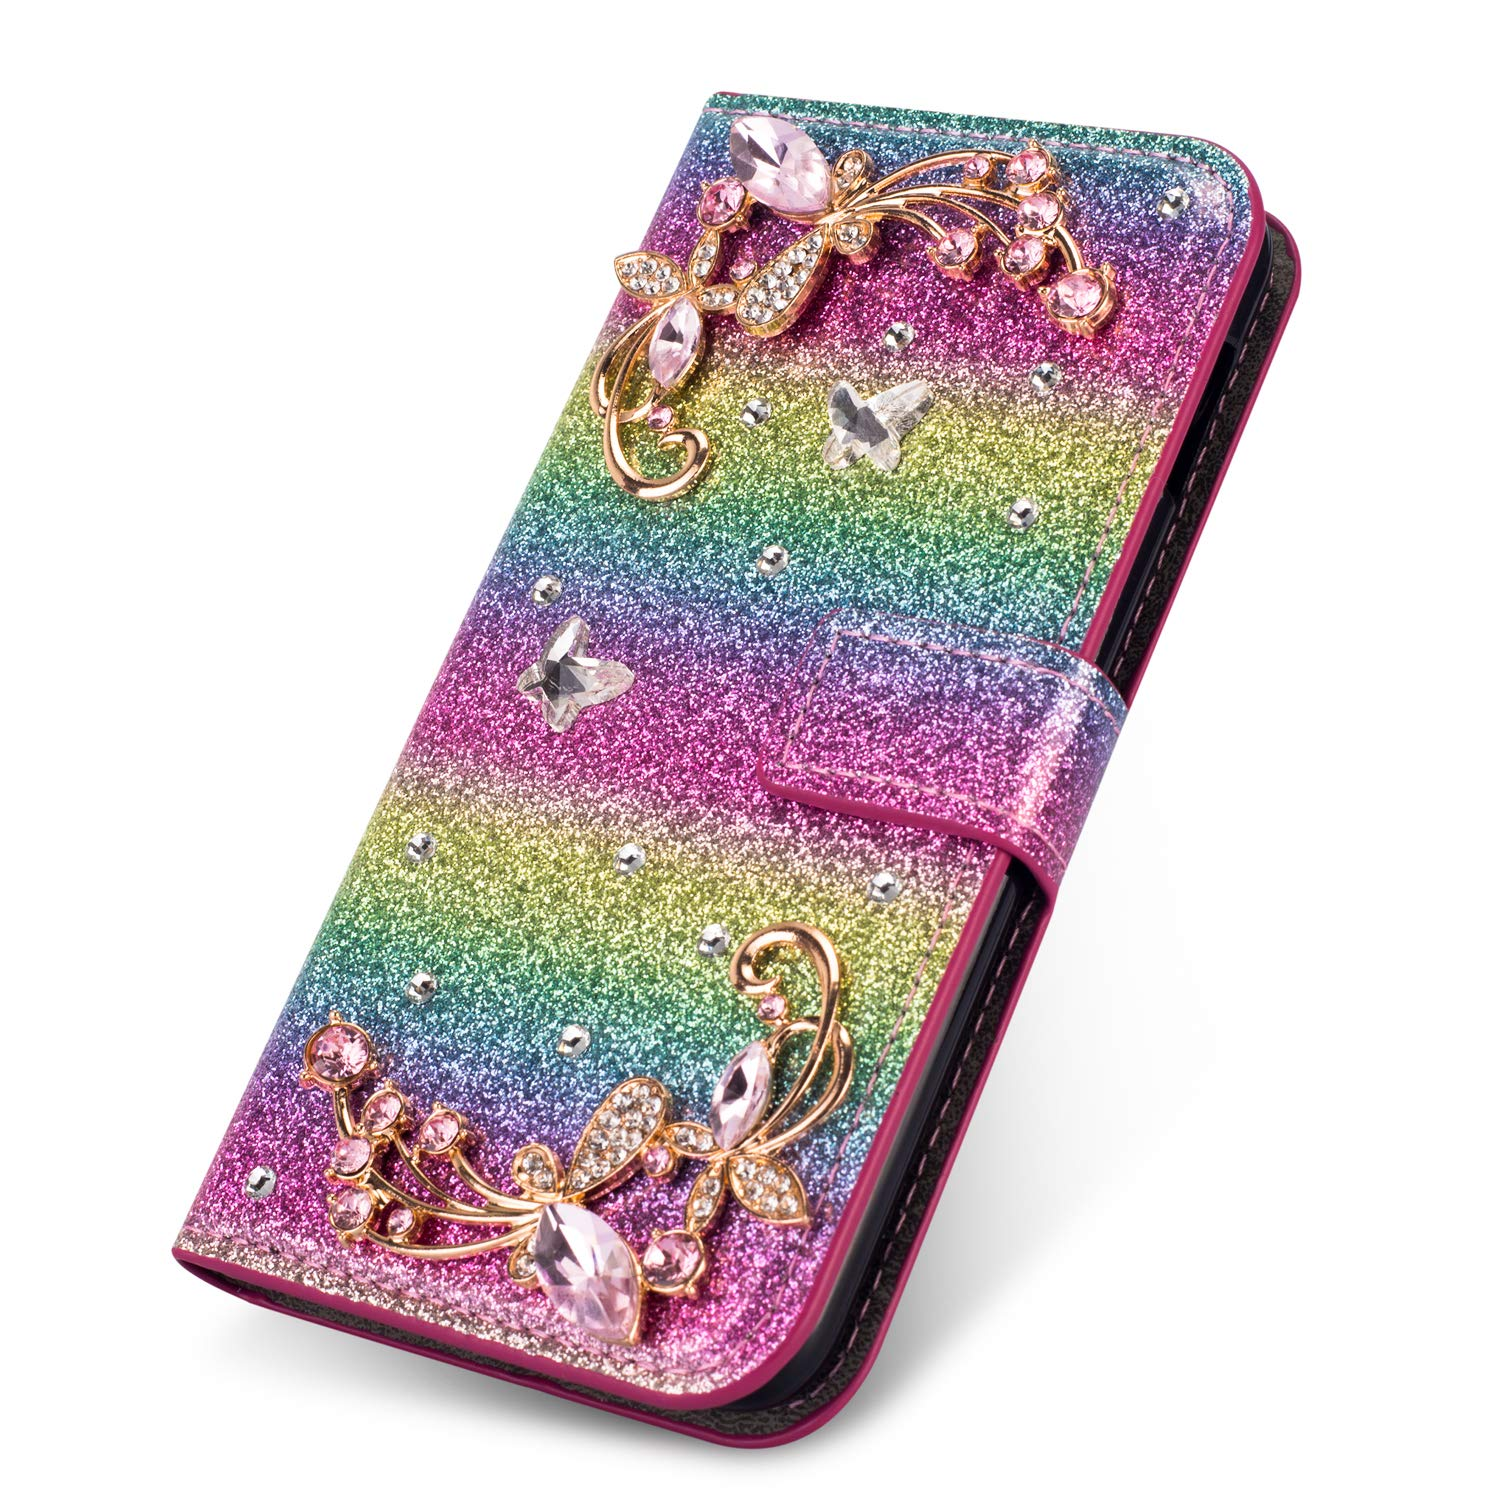 Diamond Wallet Leather Case for Galaxy A6 Plus 2018,Silver Glitter Flip Cover for Galaxy A6 Plus 2018,Herzzer Luxury 3D Flower Butterfly Decor Magnetic Stand Case with Inner Soft Rubber Case